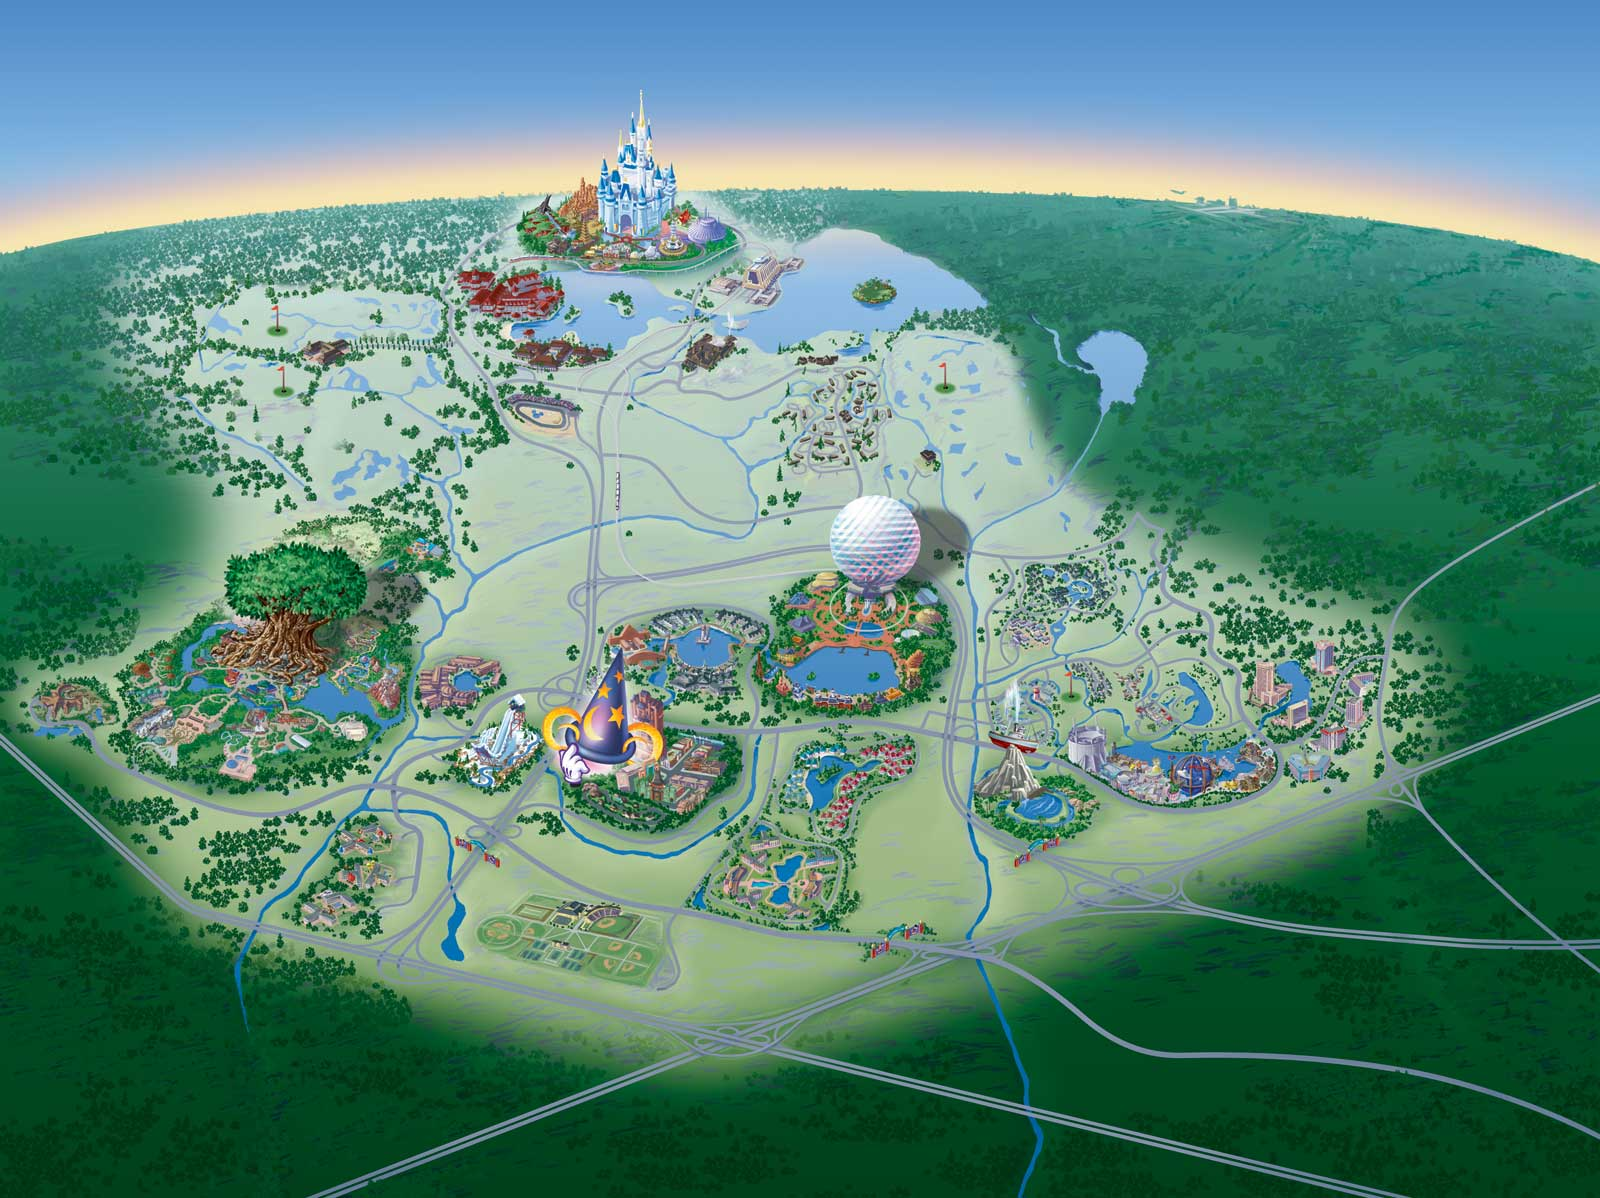 Map of Walt Disney World Resort - wdwinfo.com Map Disney World on animal kingdom map, hong kong disneyland map, florida map, hollywood studios map, disney world florida, disney princess map, resort map, 2012 end of world, magic kingdom map, universal studios map, walt disney 2014 2015 map, disney epcot map, disney world resort, downtown disney map, tokyo disneyland map, disney world ticket, hotels in disney world, disney world dining, typhoon lagoon map, orlando map, disney world family vacation, disney land map, wdw map, google world map, islands of adventure map, state map, sea world map, disney world discount, national geographic maps, free world map,